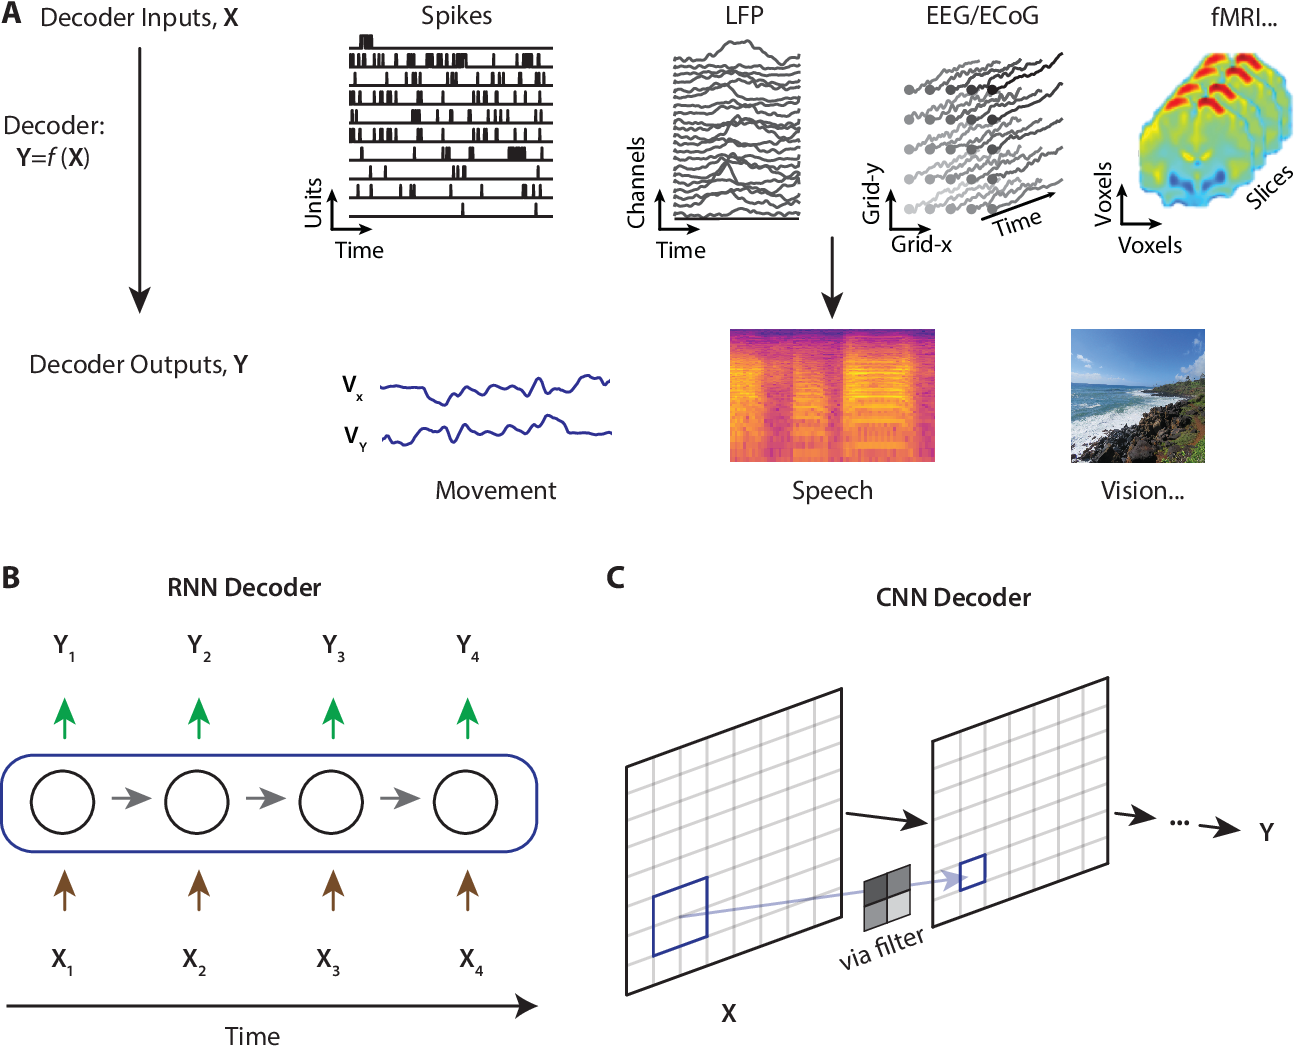 Figure 1 for Deep learning approaches for neural decoding: from CNNs to LSTMs and spikes to fMRI